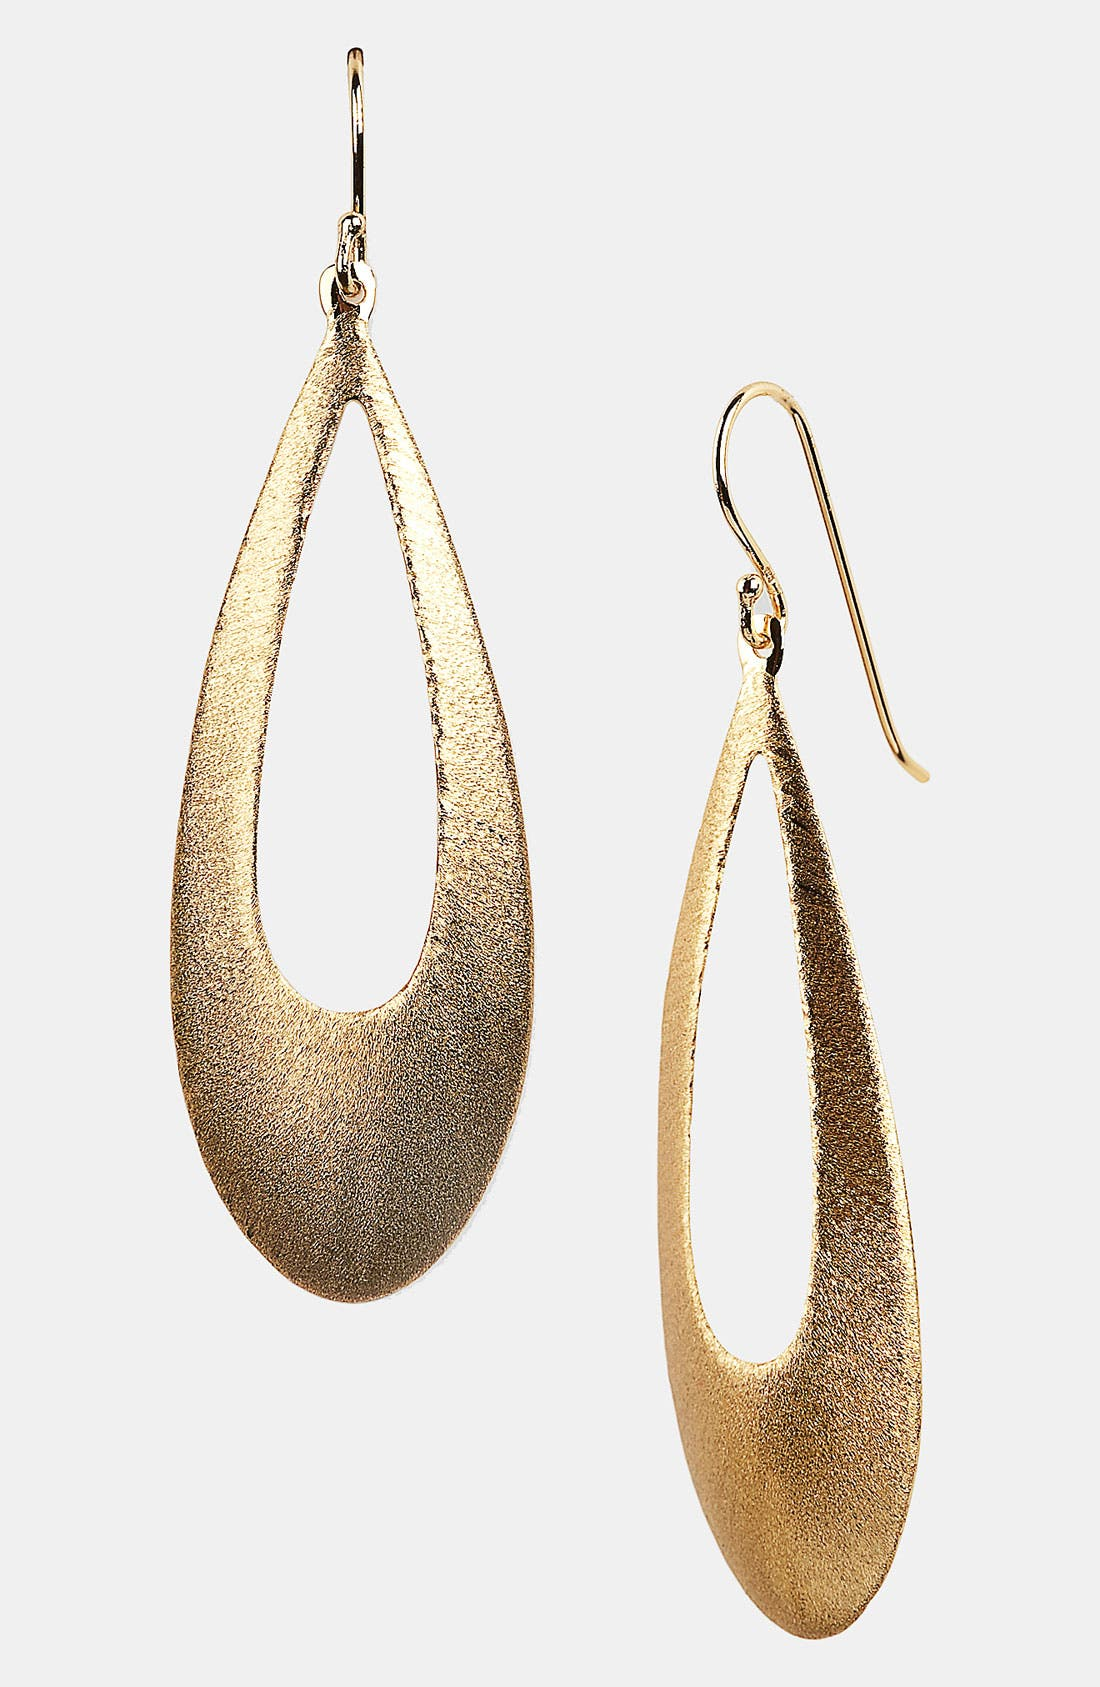 Alternate Image 1 Selected - Argento Vivo Open Teardrop Earrings (Nordstrom Exclusive)